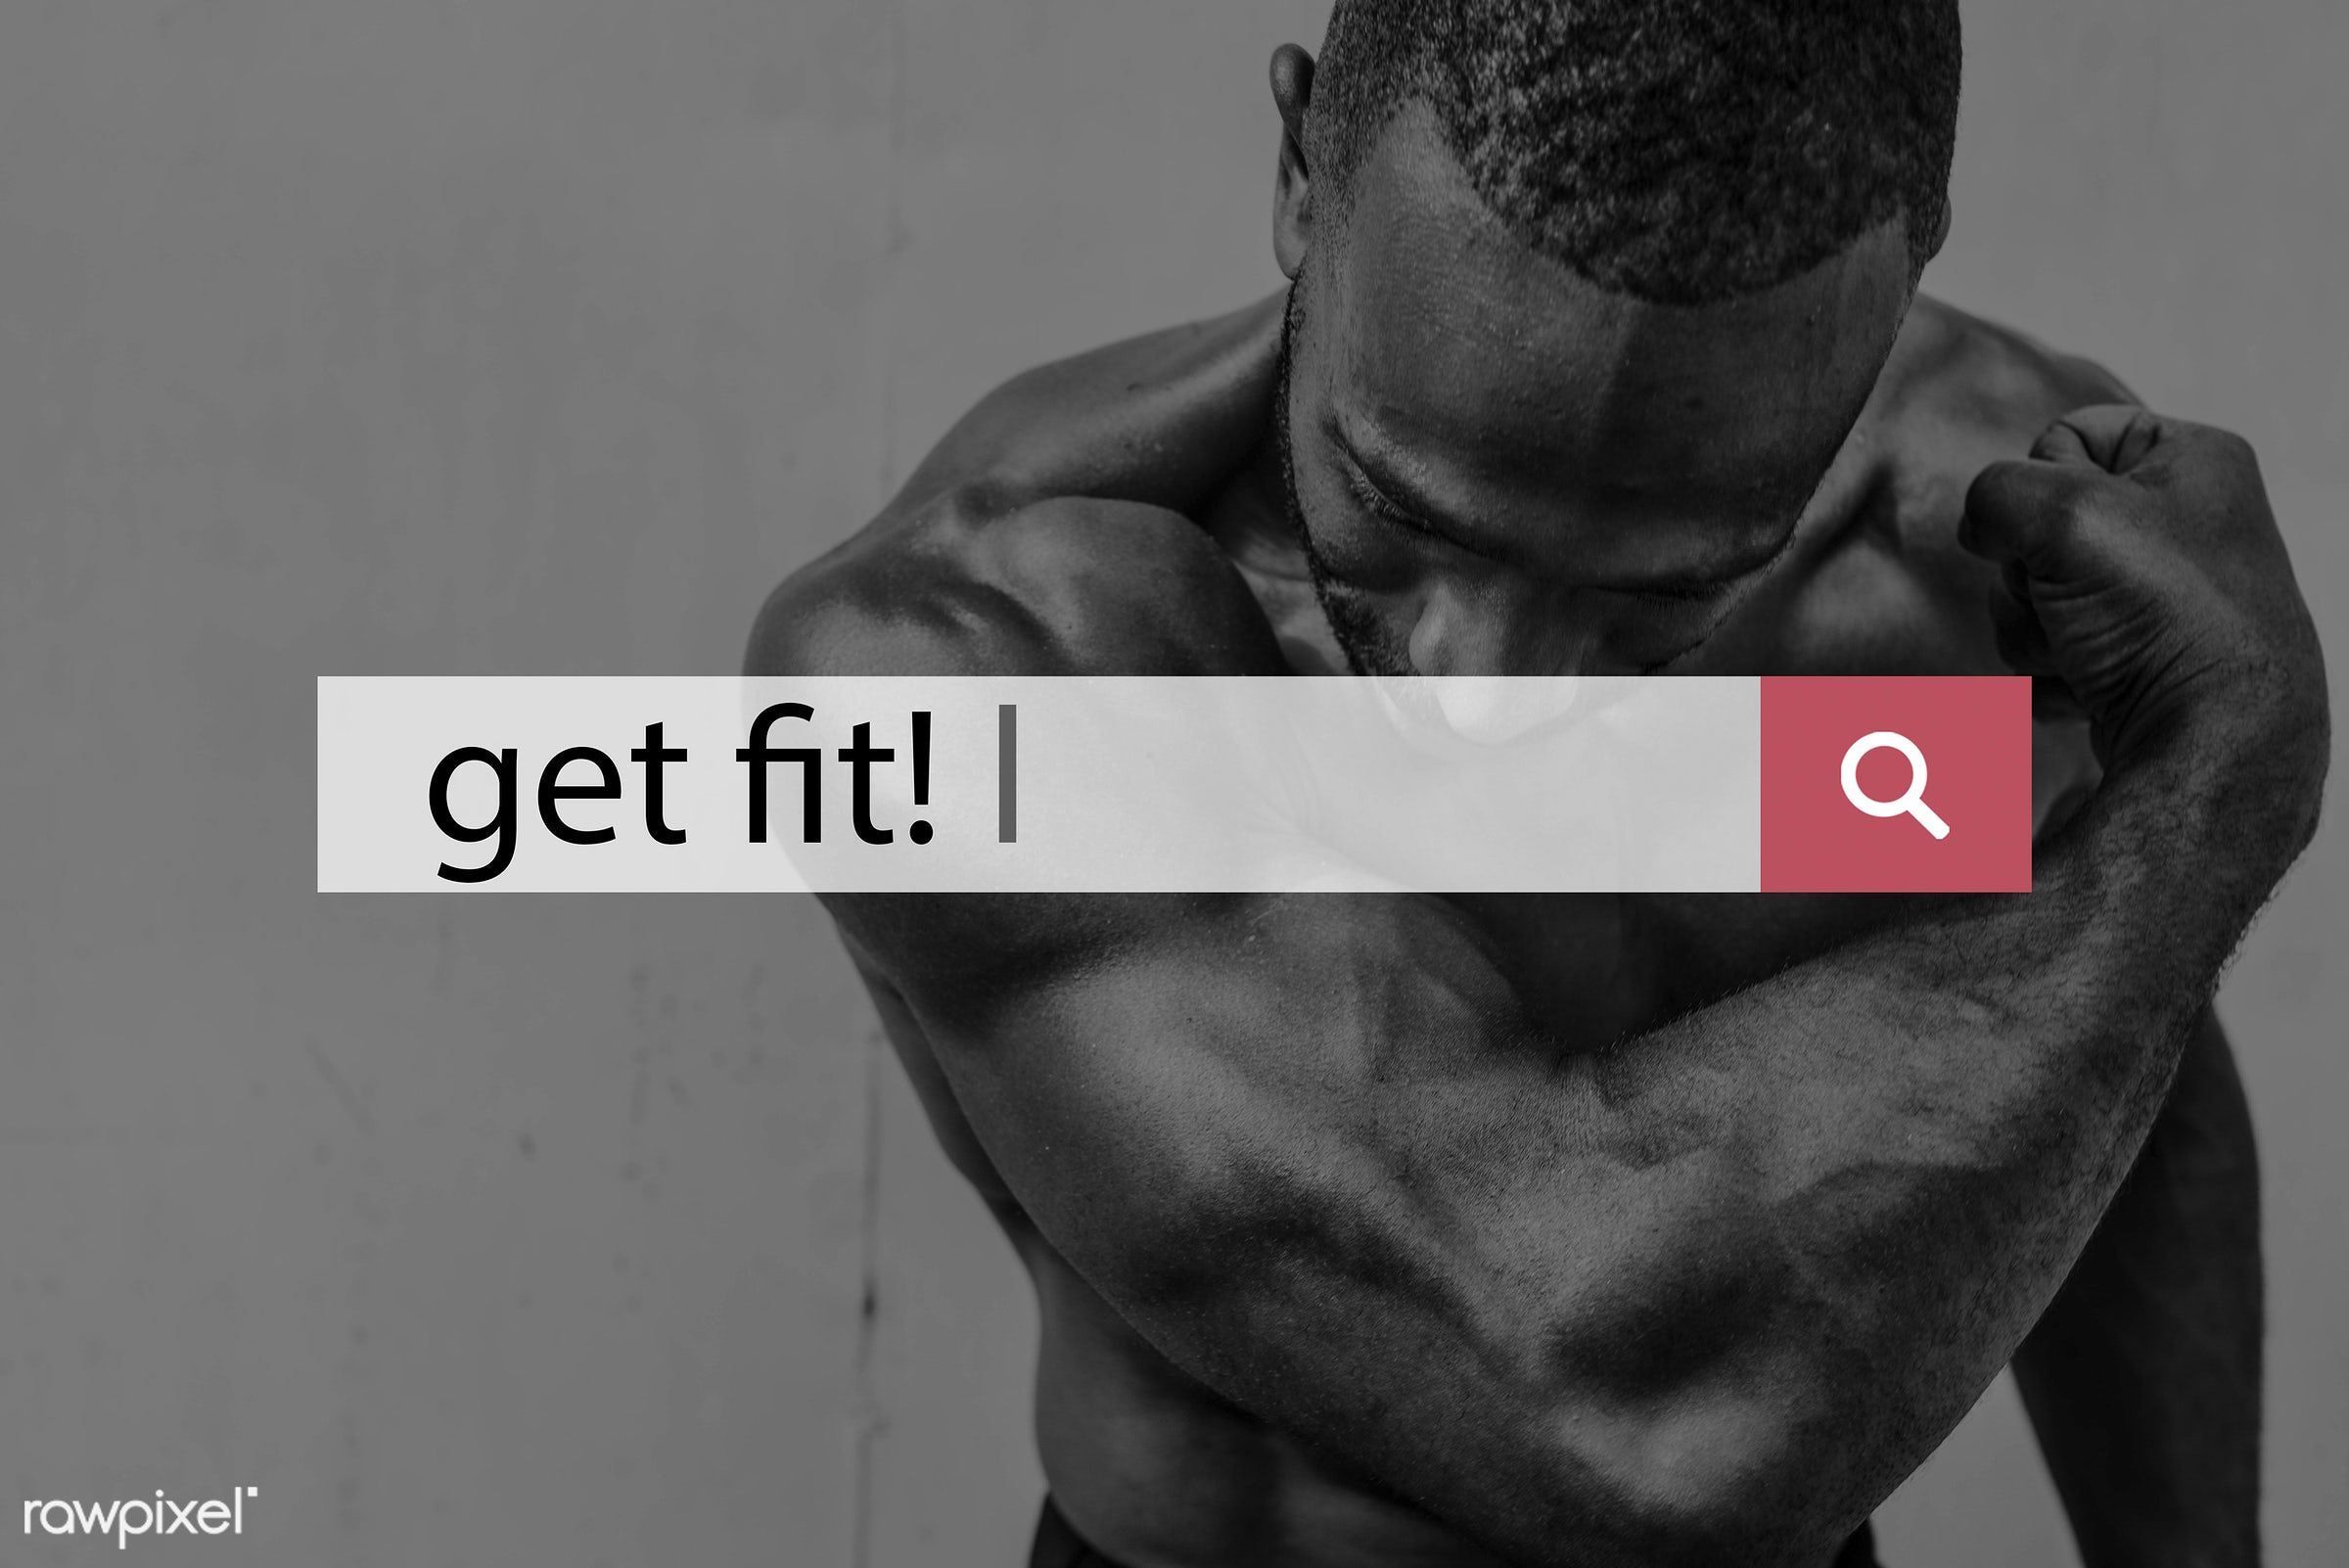 african descent, abs, adult, arms, be strong, biceps, body, body challenge, body matters, bodybuilder, build a body, build...